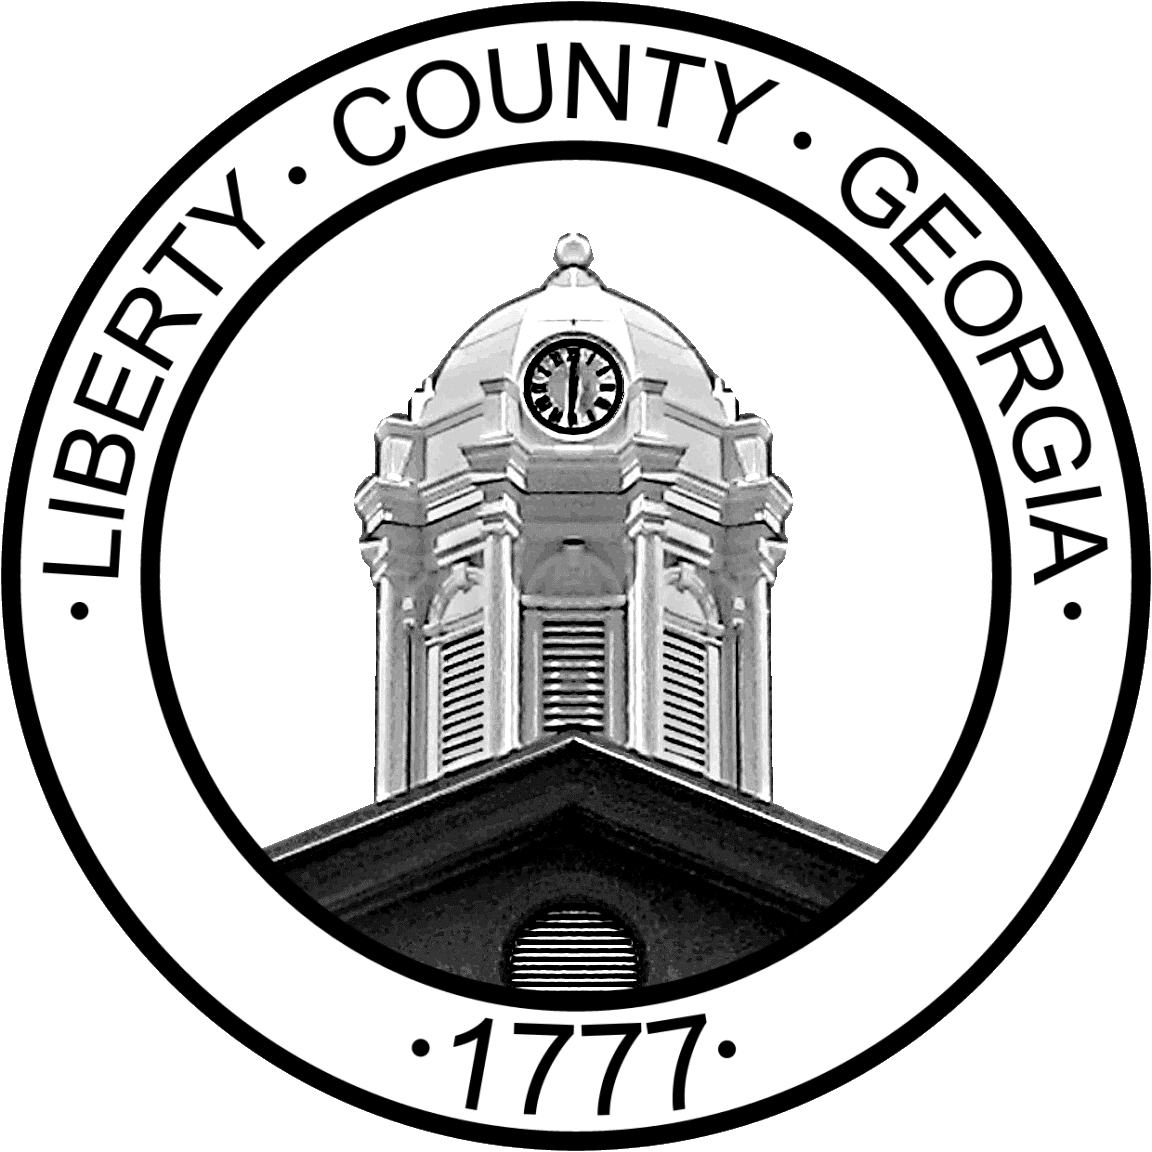 Liberty County Seal